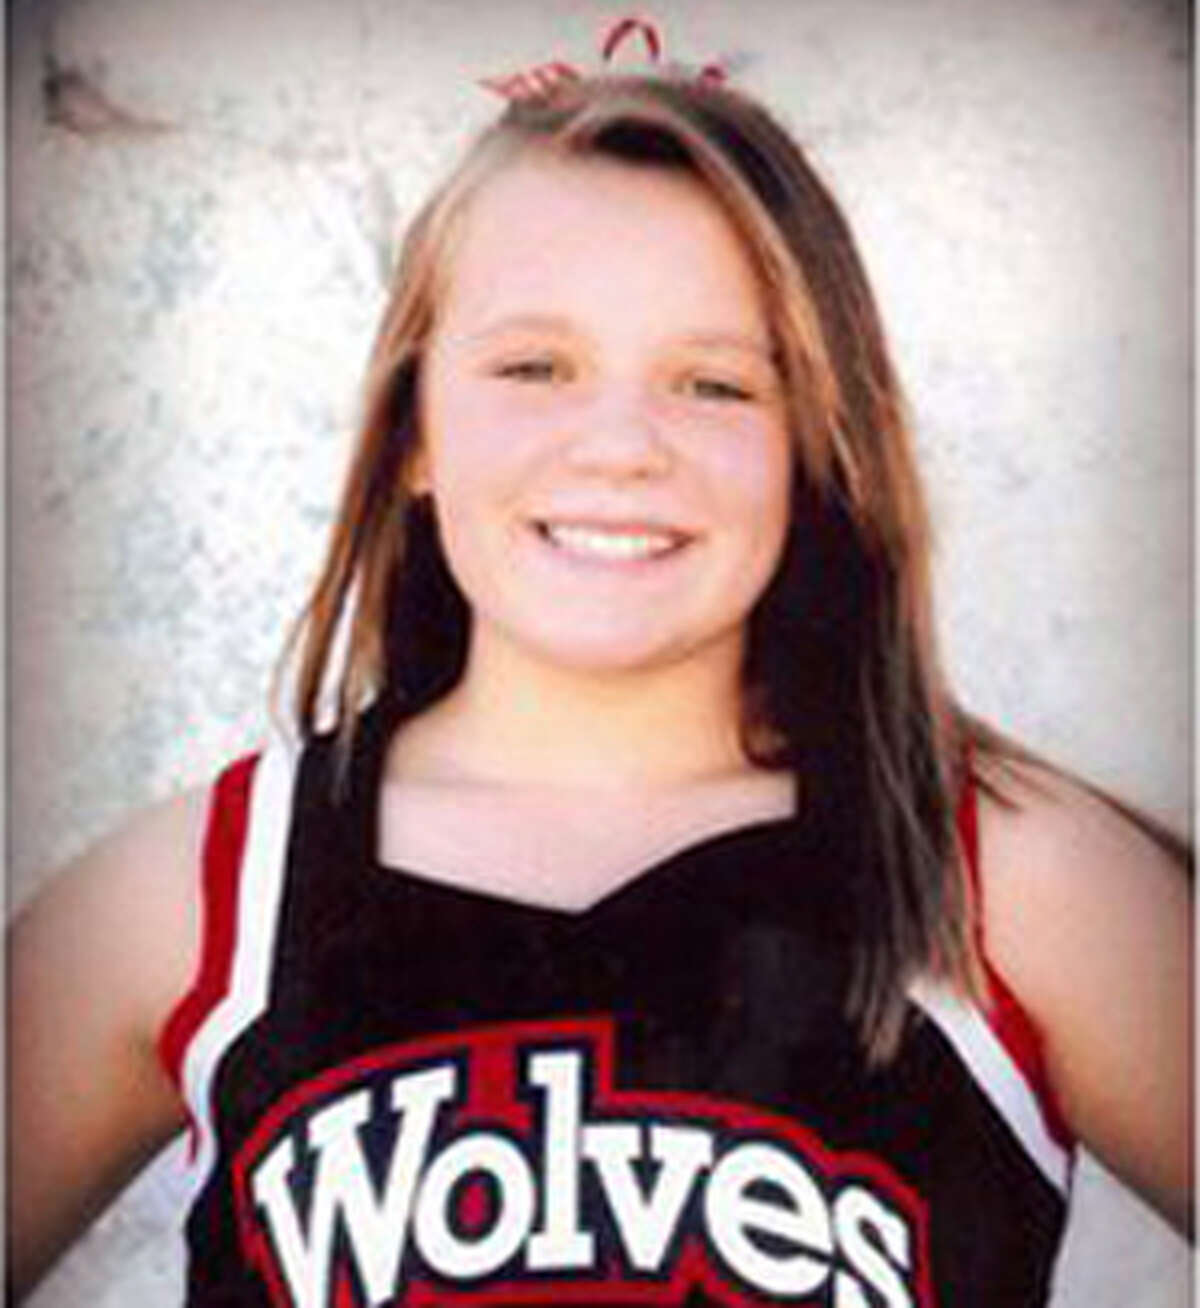 Hailey was reported missing in December 2010. She and her mother, Billie Dunn, lived in the small West Texas town of Colorado City at the time and Adkins, who was dating Hailey's mother, was named as a person of interest.